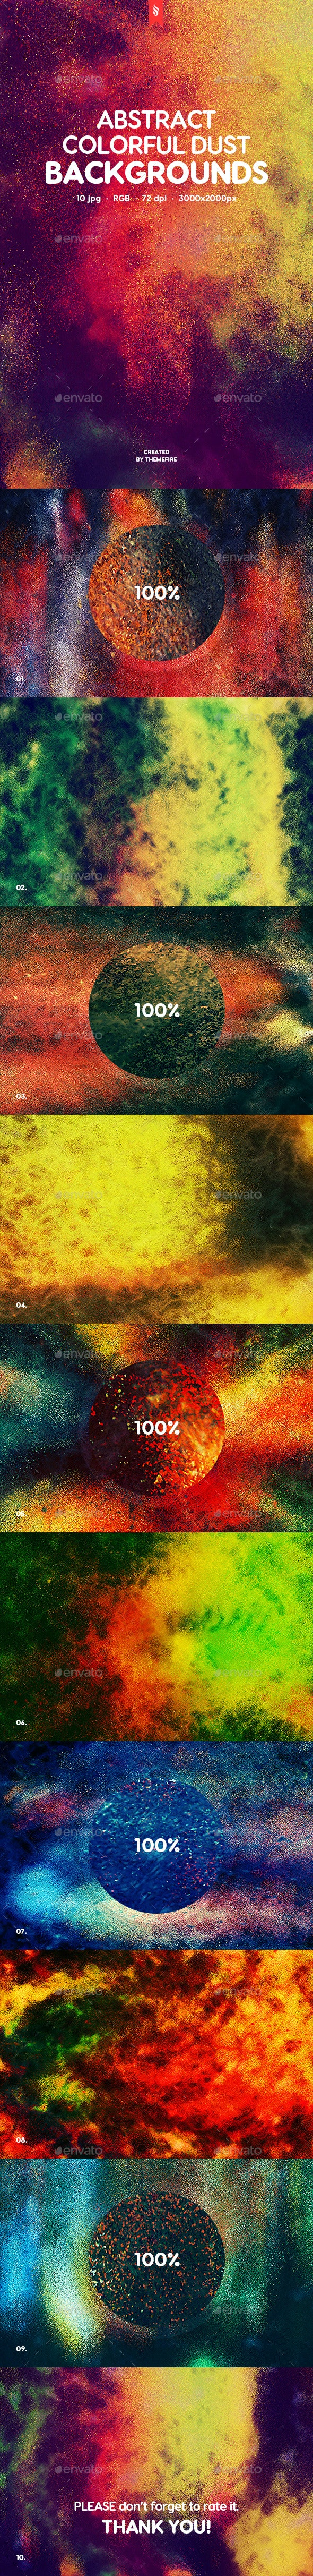 Abstract Colorful Dust Backgrounds - Abstract Backgrounds